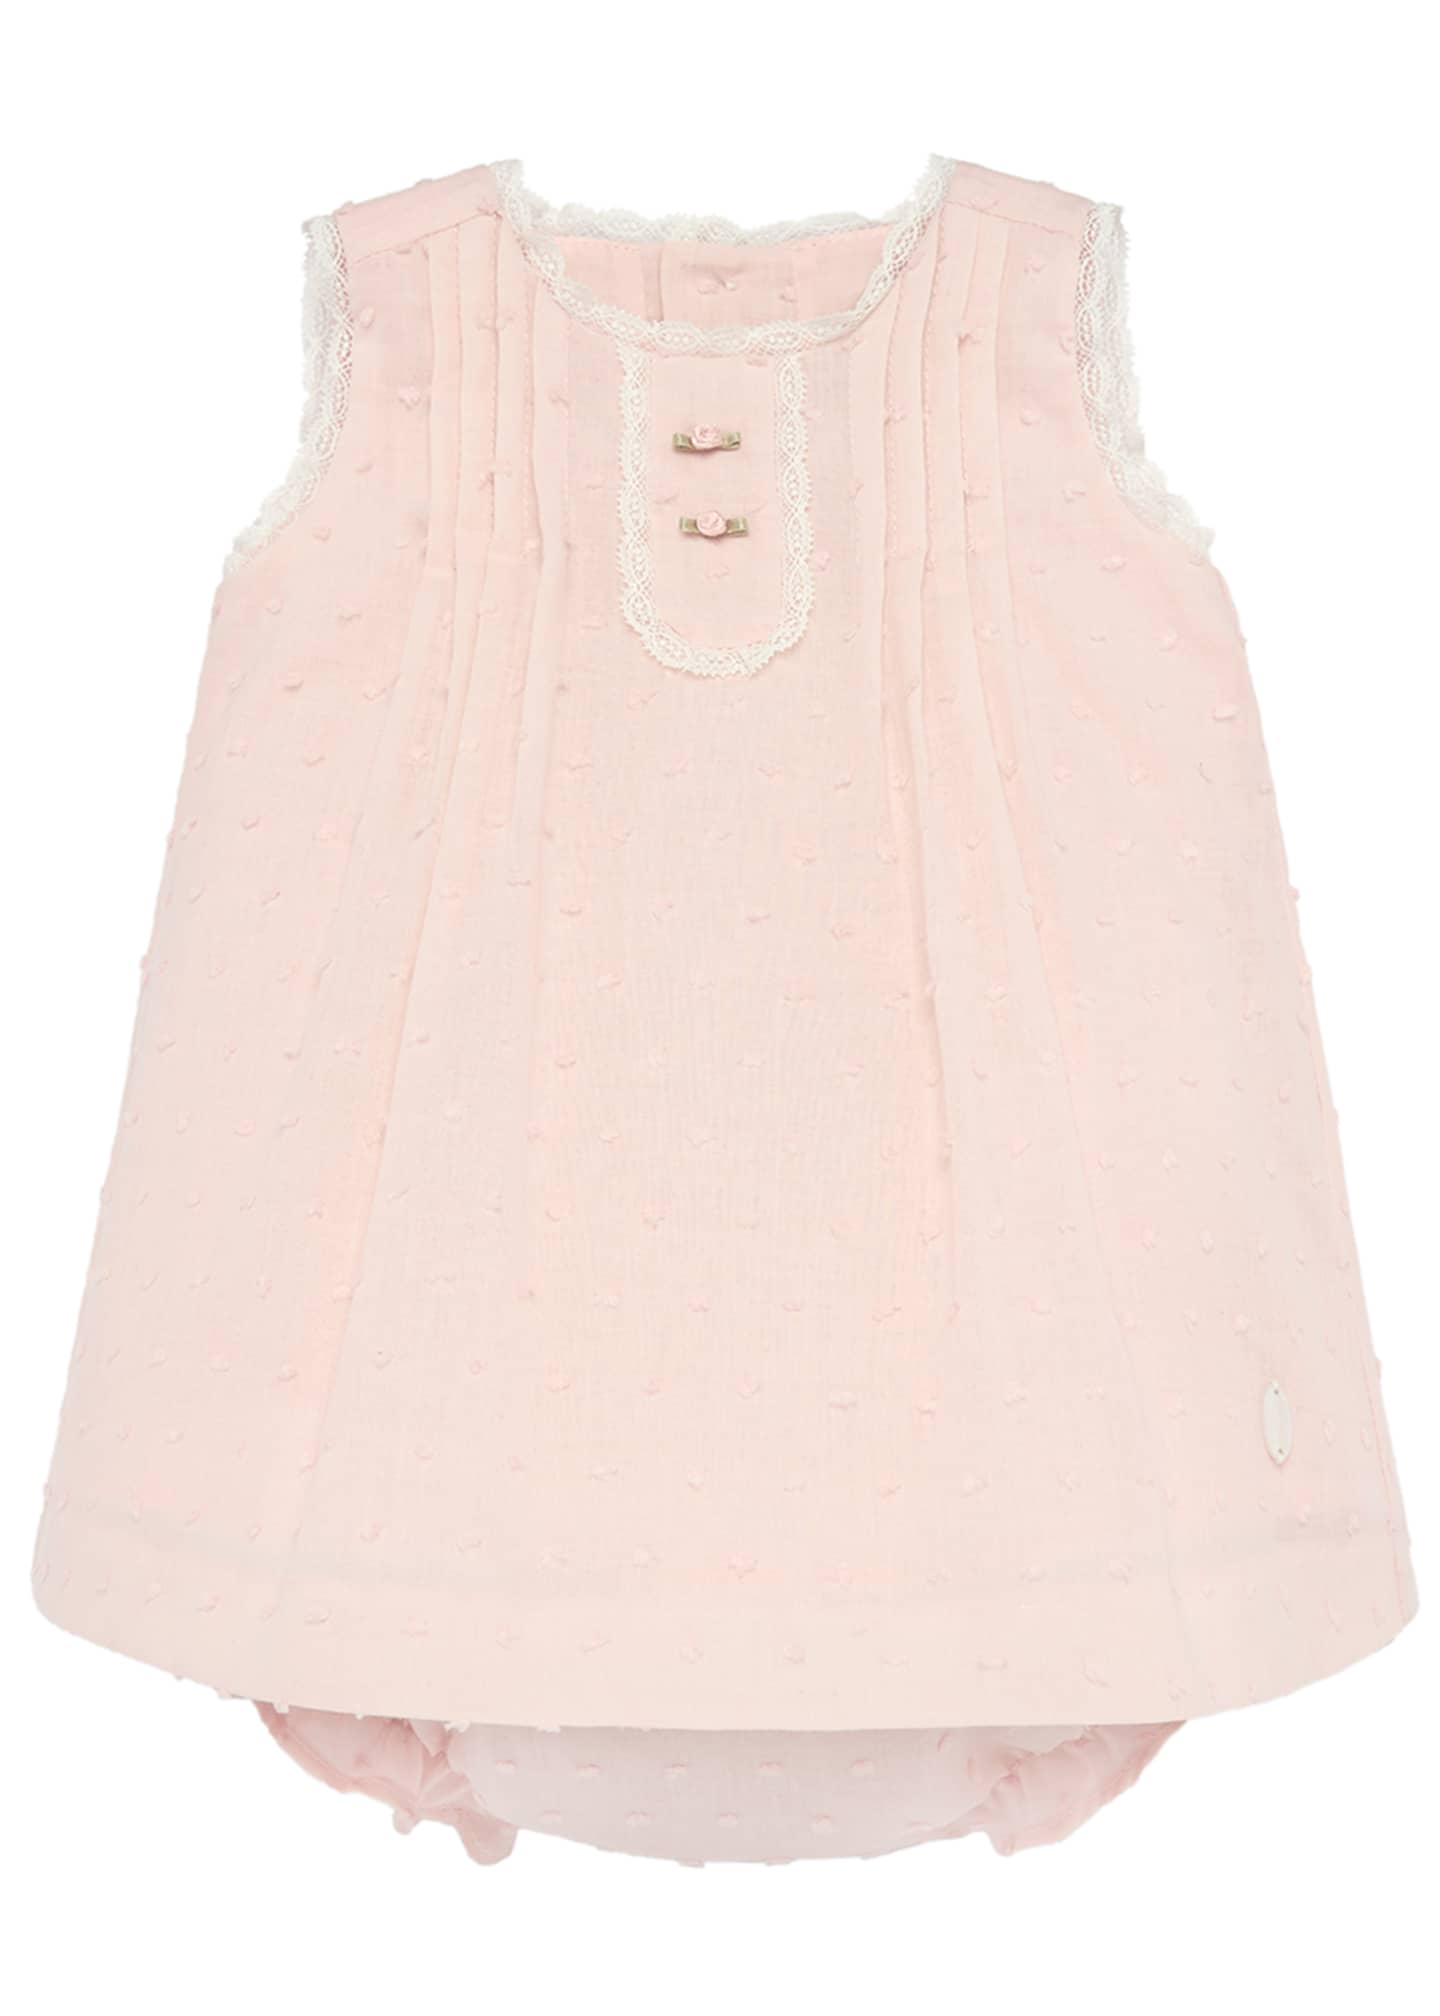 Pili Carrera Swiss Dot Lace-Trim Dress w/ Bloomers,